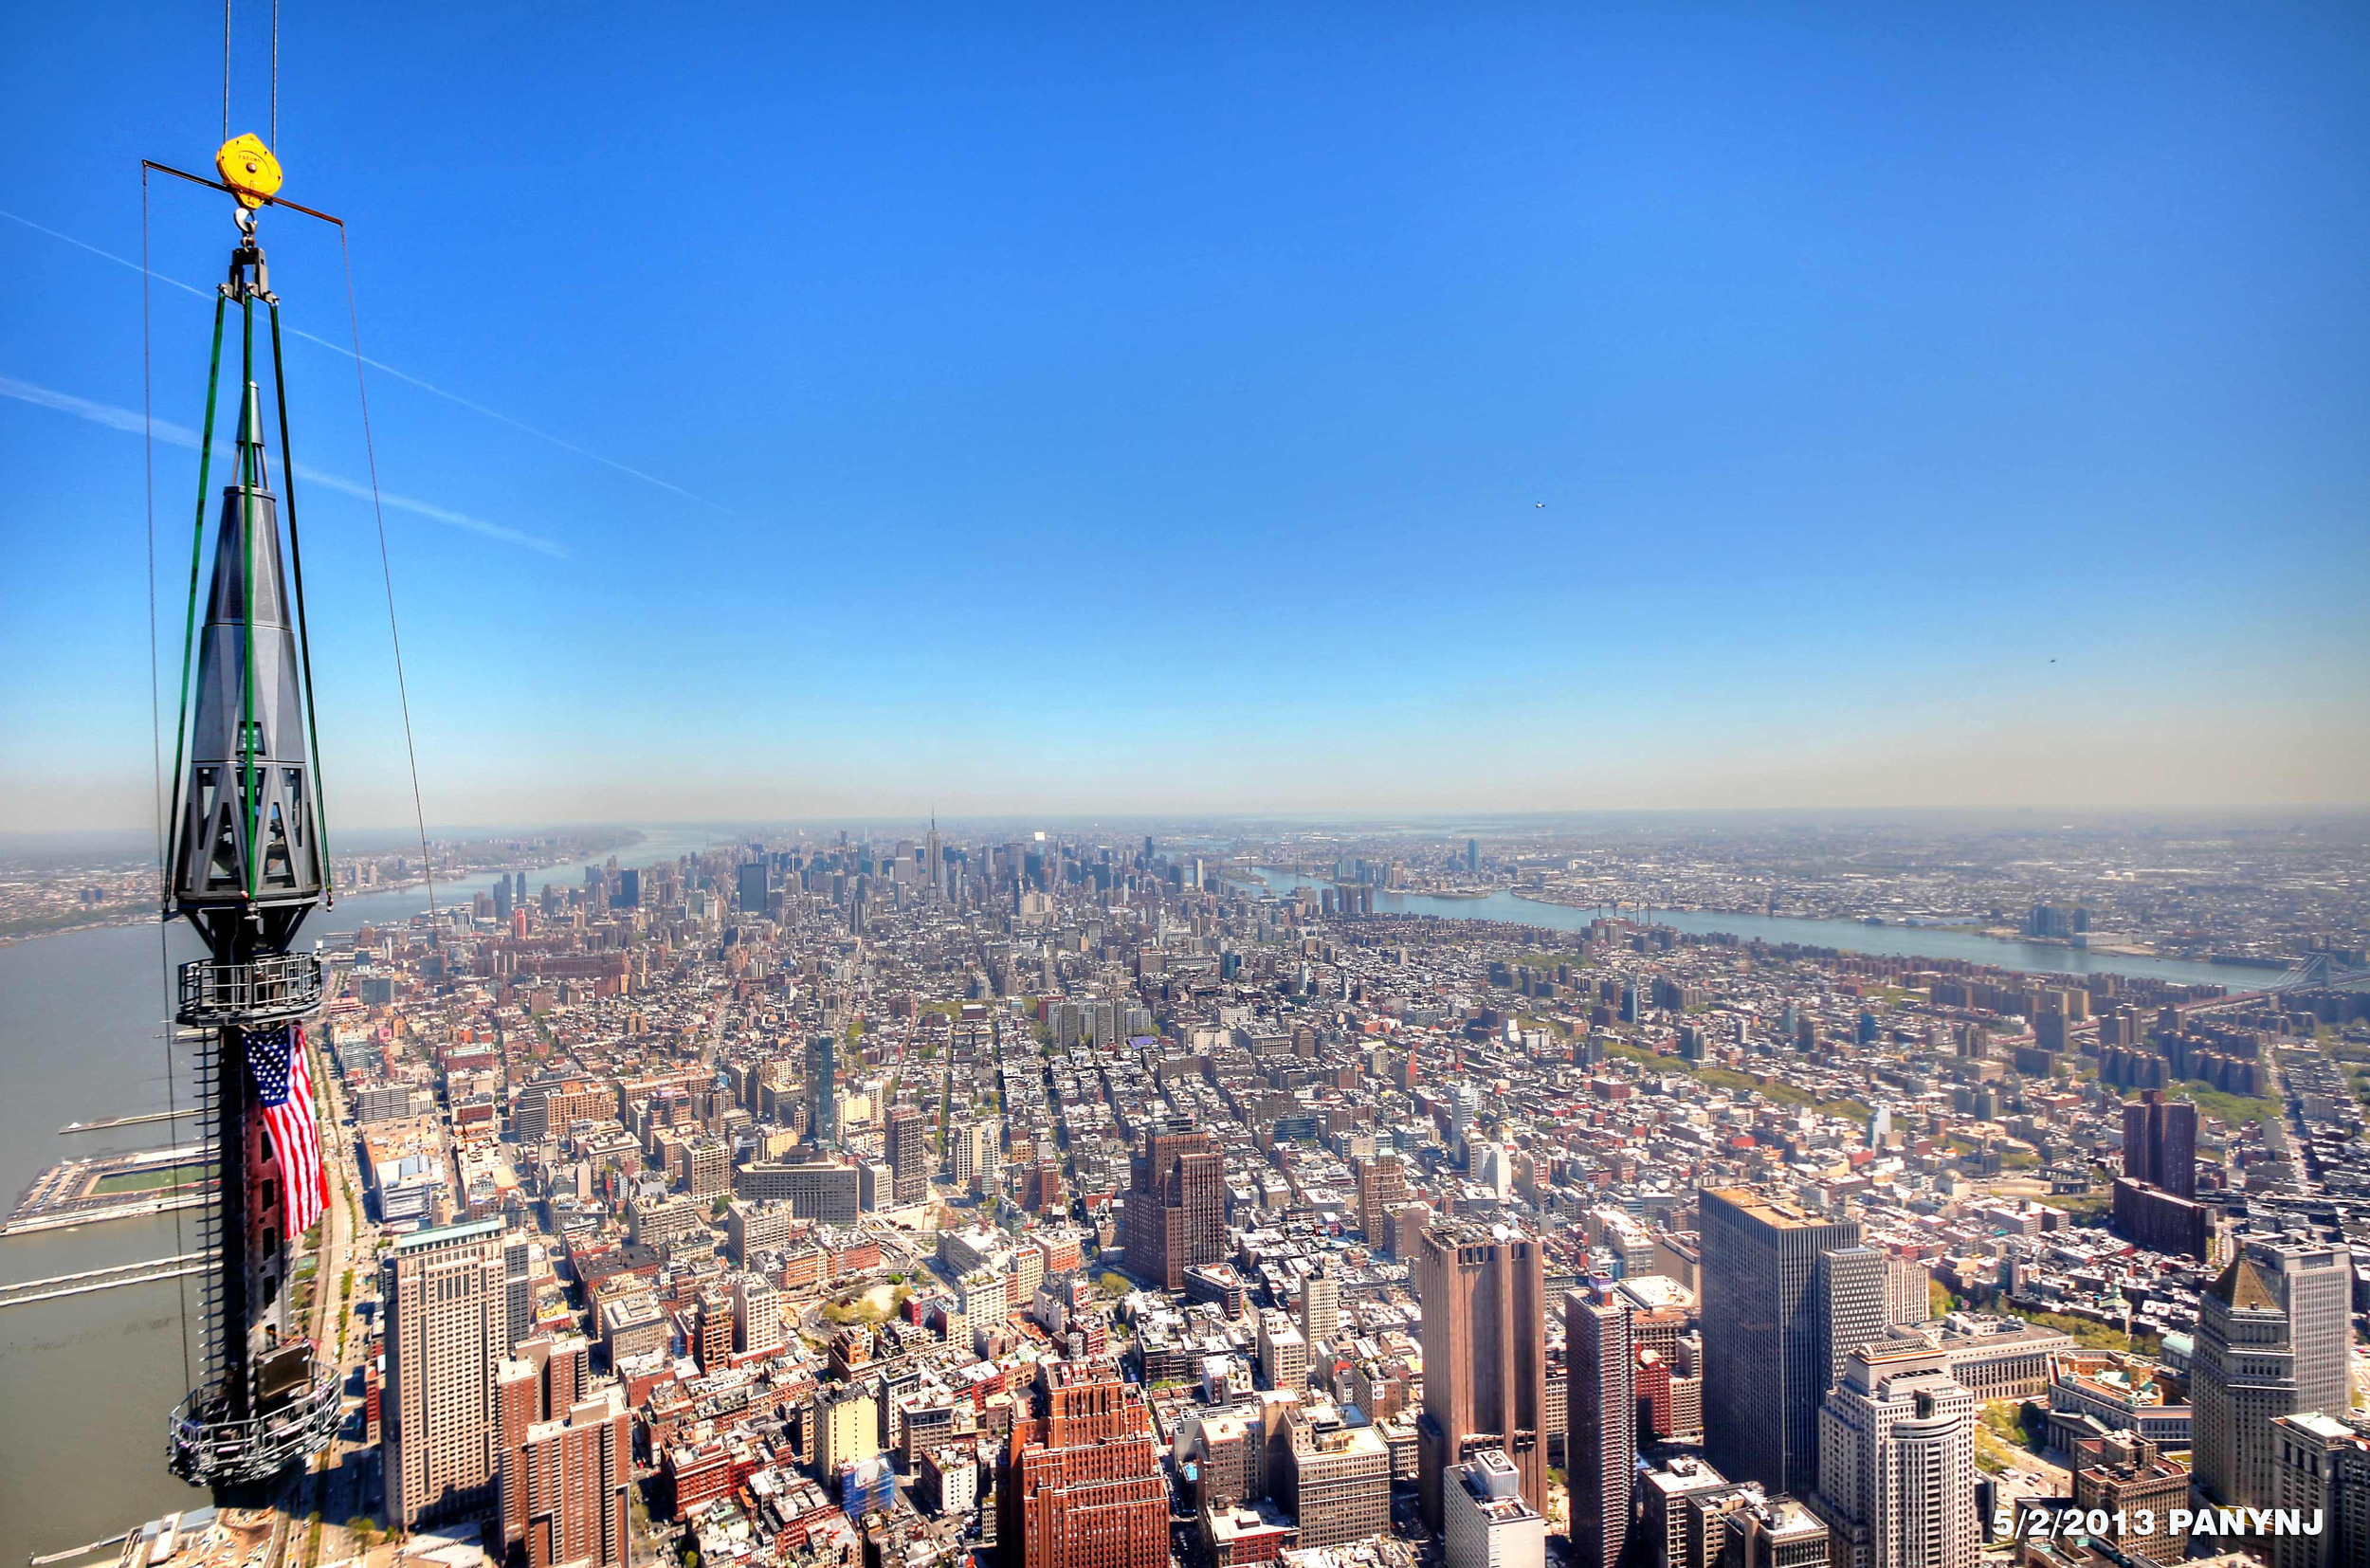 5 2 2013 wtc tower 1 spire beacon hdS 46.jpg